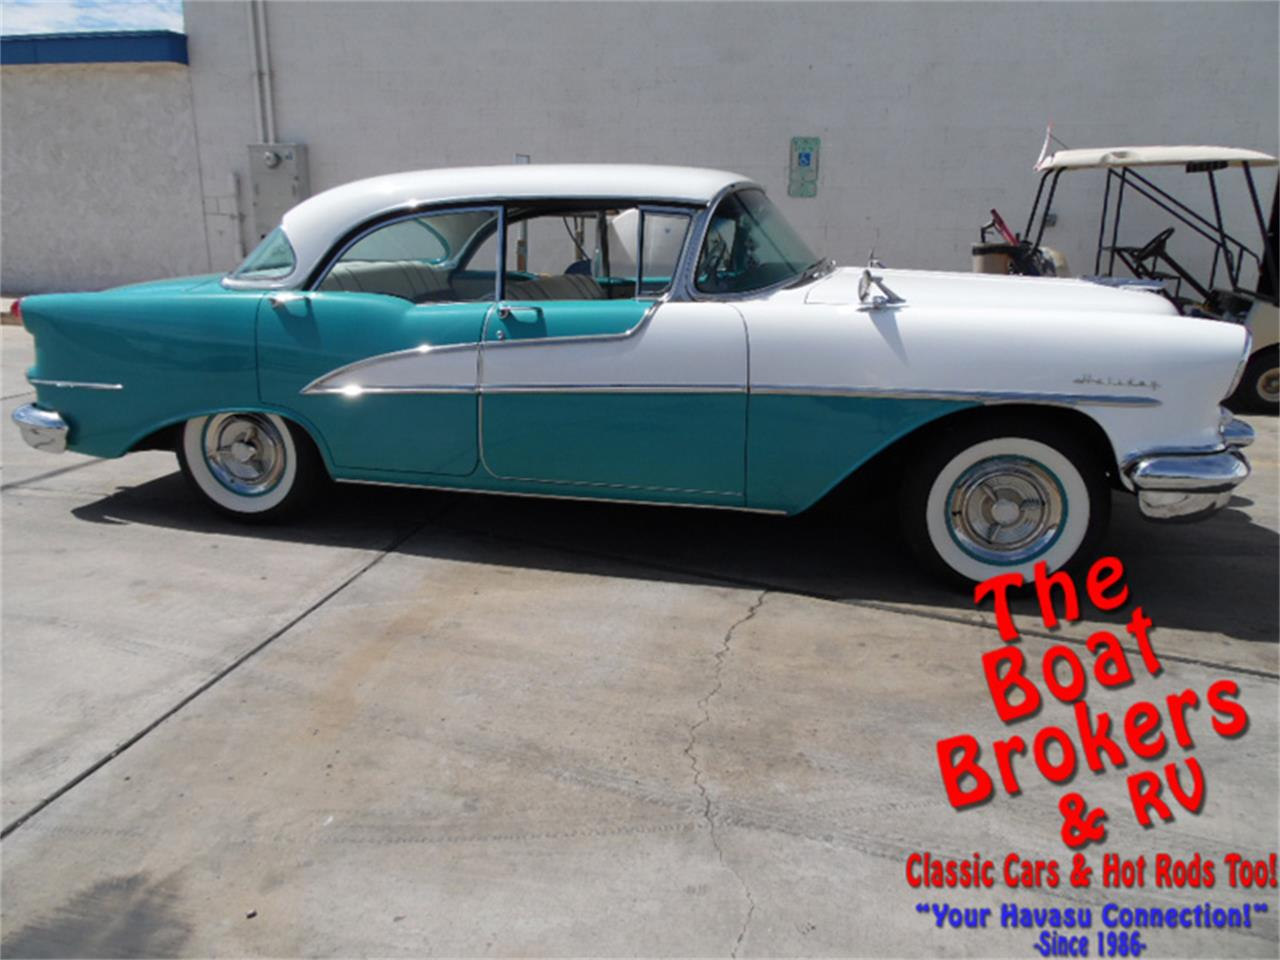 Large Picture of Classic 1955 Oldsmobile Holiday Rocket 88 - $31,000.00 Offered by The Boat Brokers - N2PY